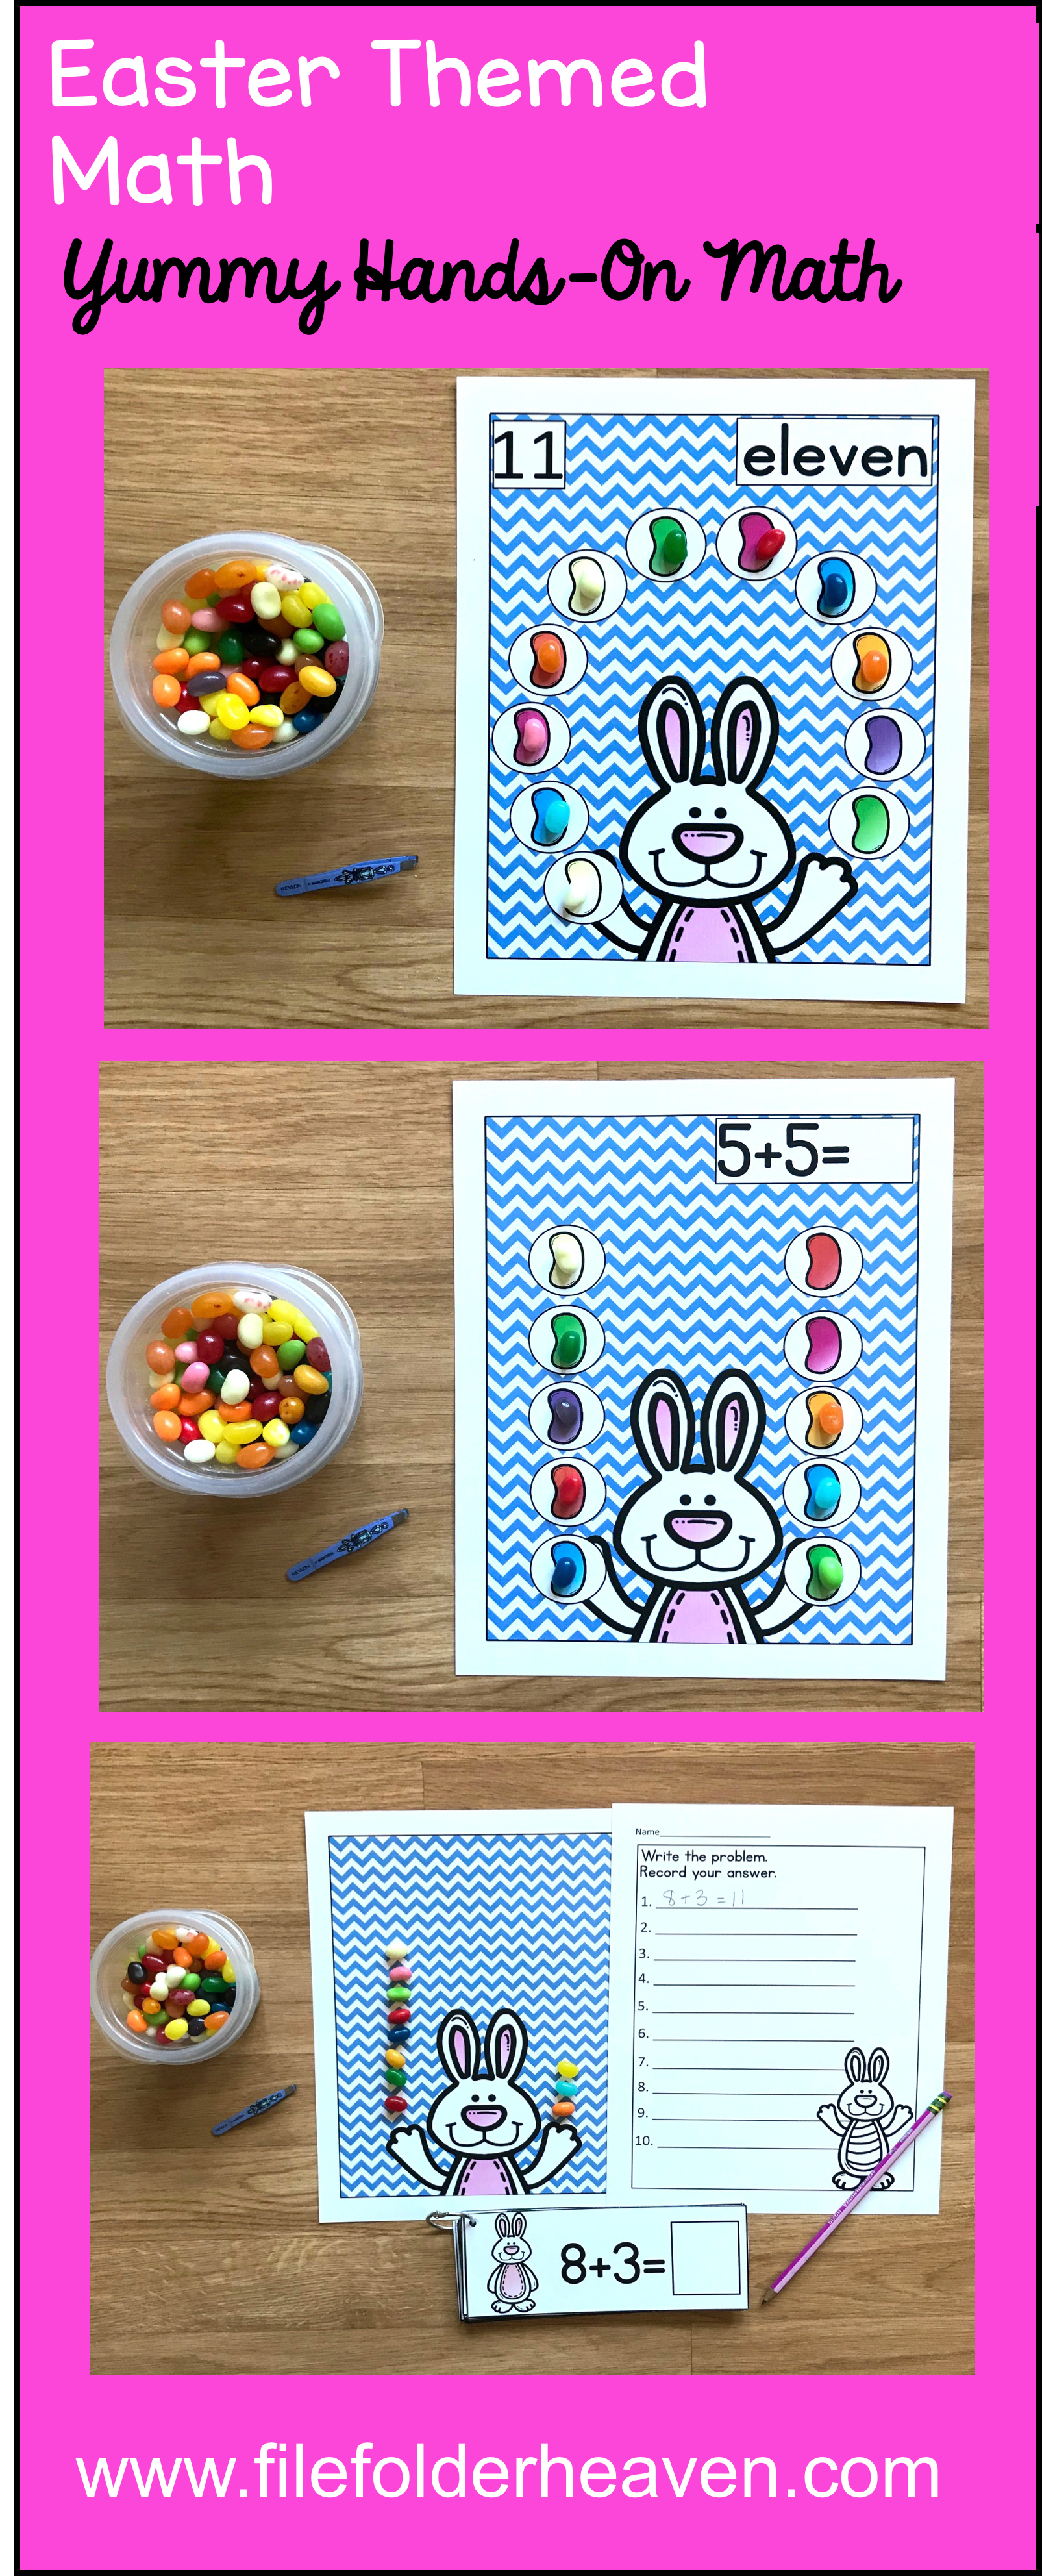 These Easter Math Activities Counting Jellybeans Offer